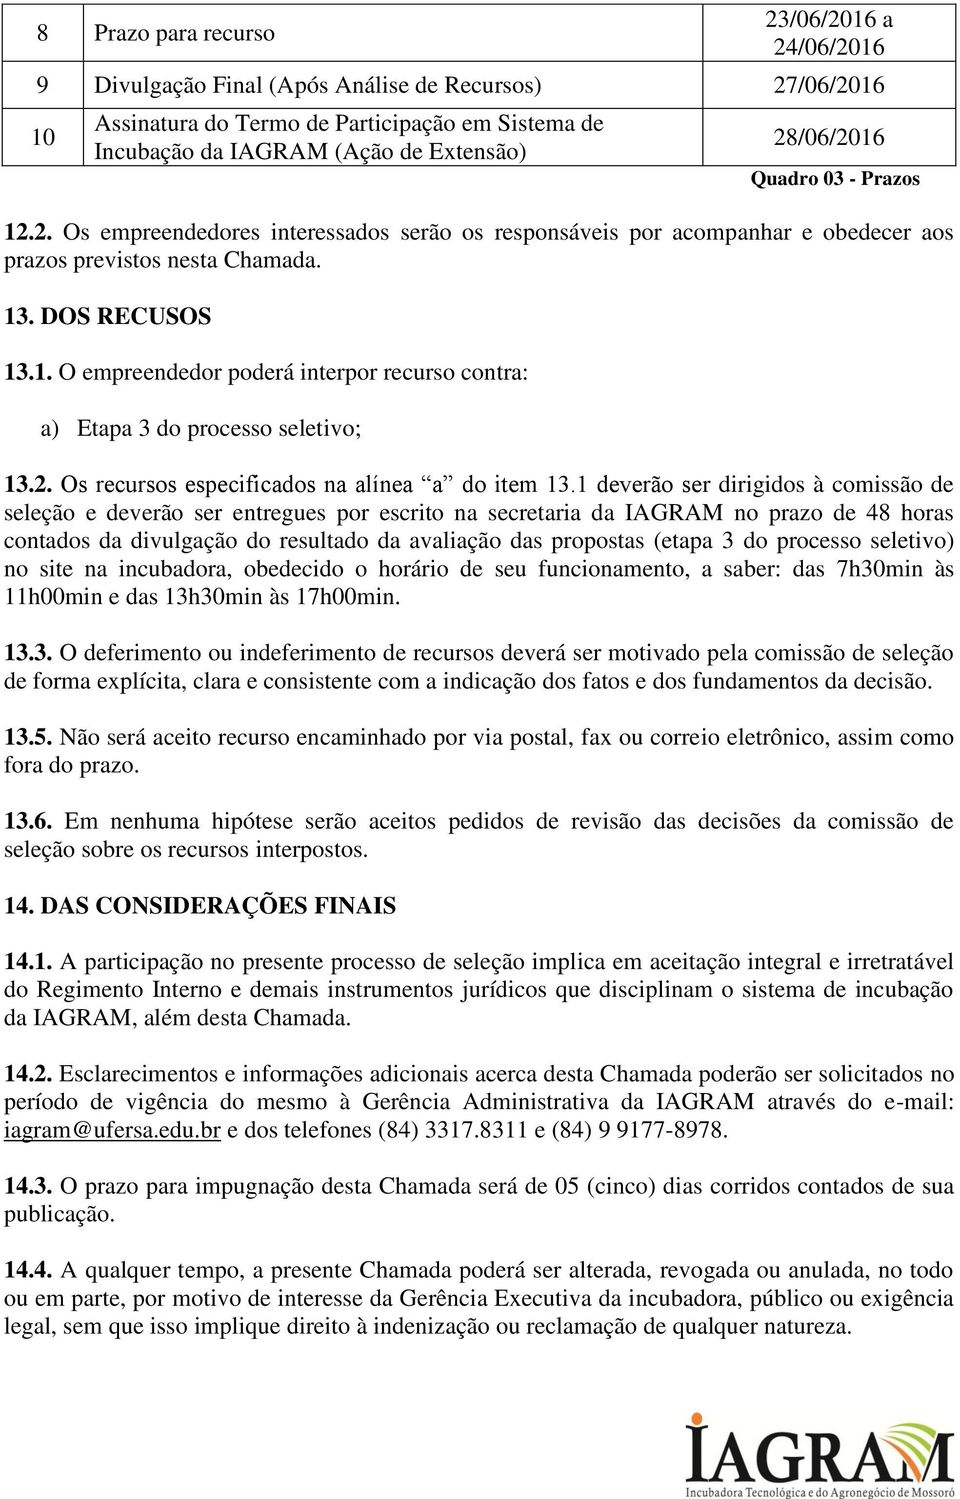 2. Os recursos especificados na alínea a do item 13.